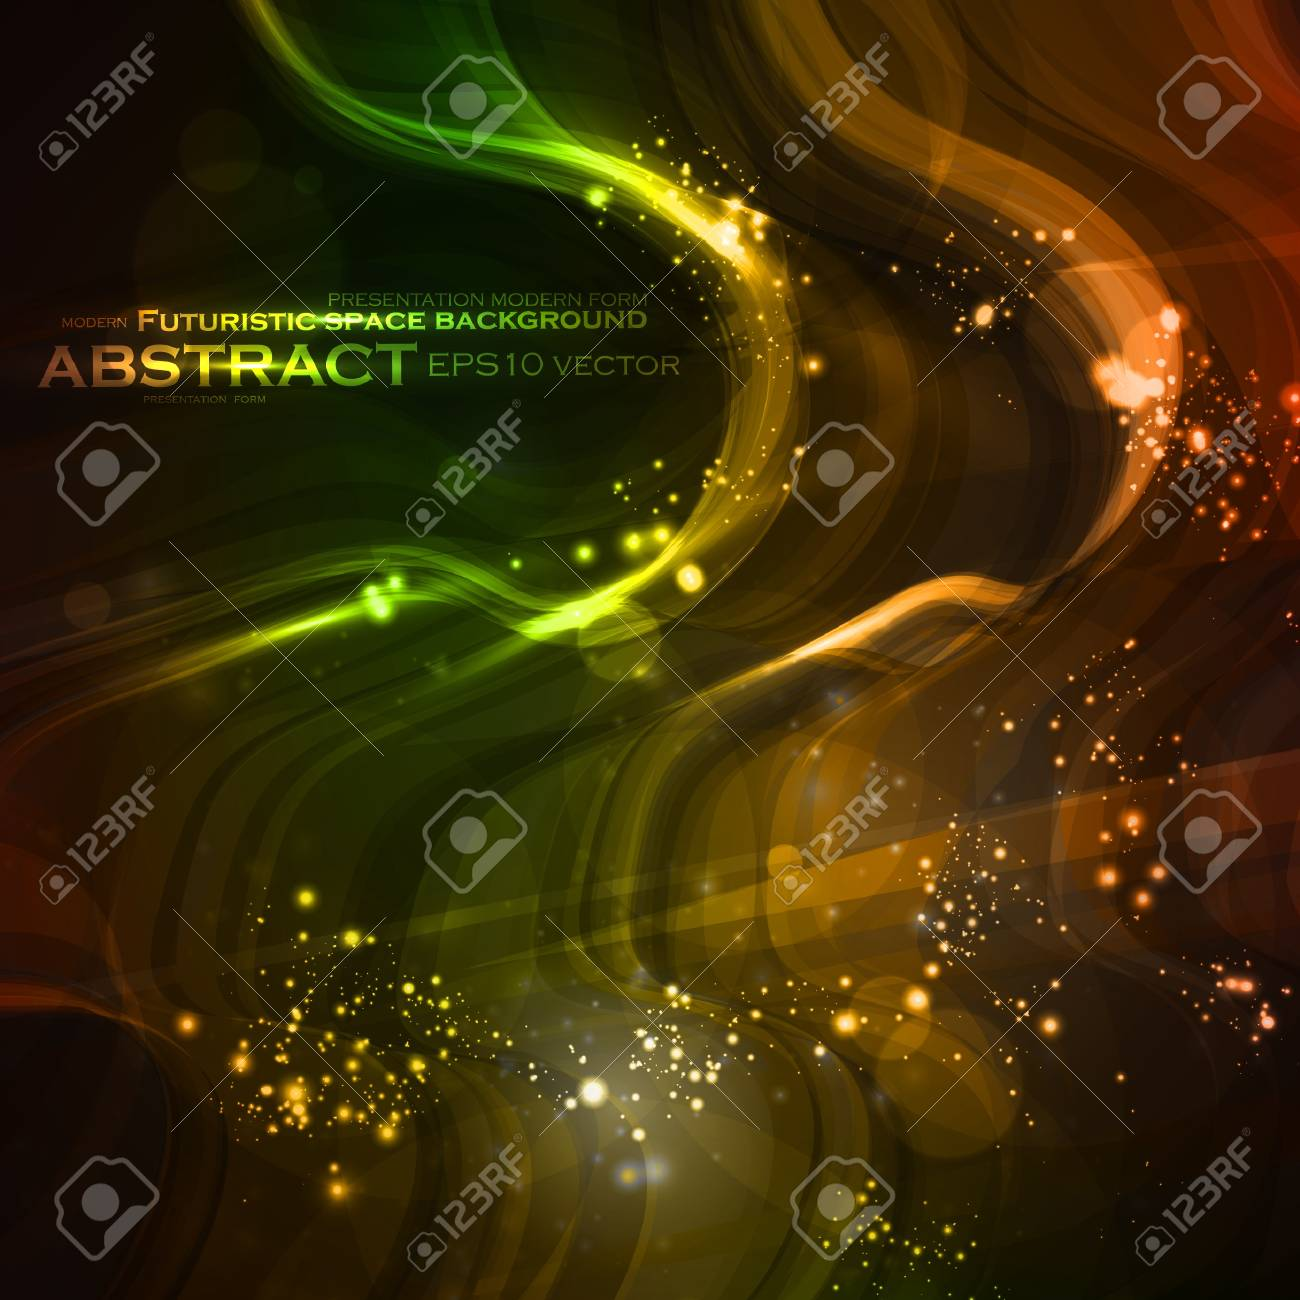 Abstract background, shiny space, futuristic wave illustration Stock Vector - 12498430